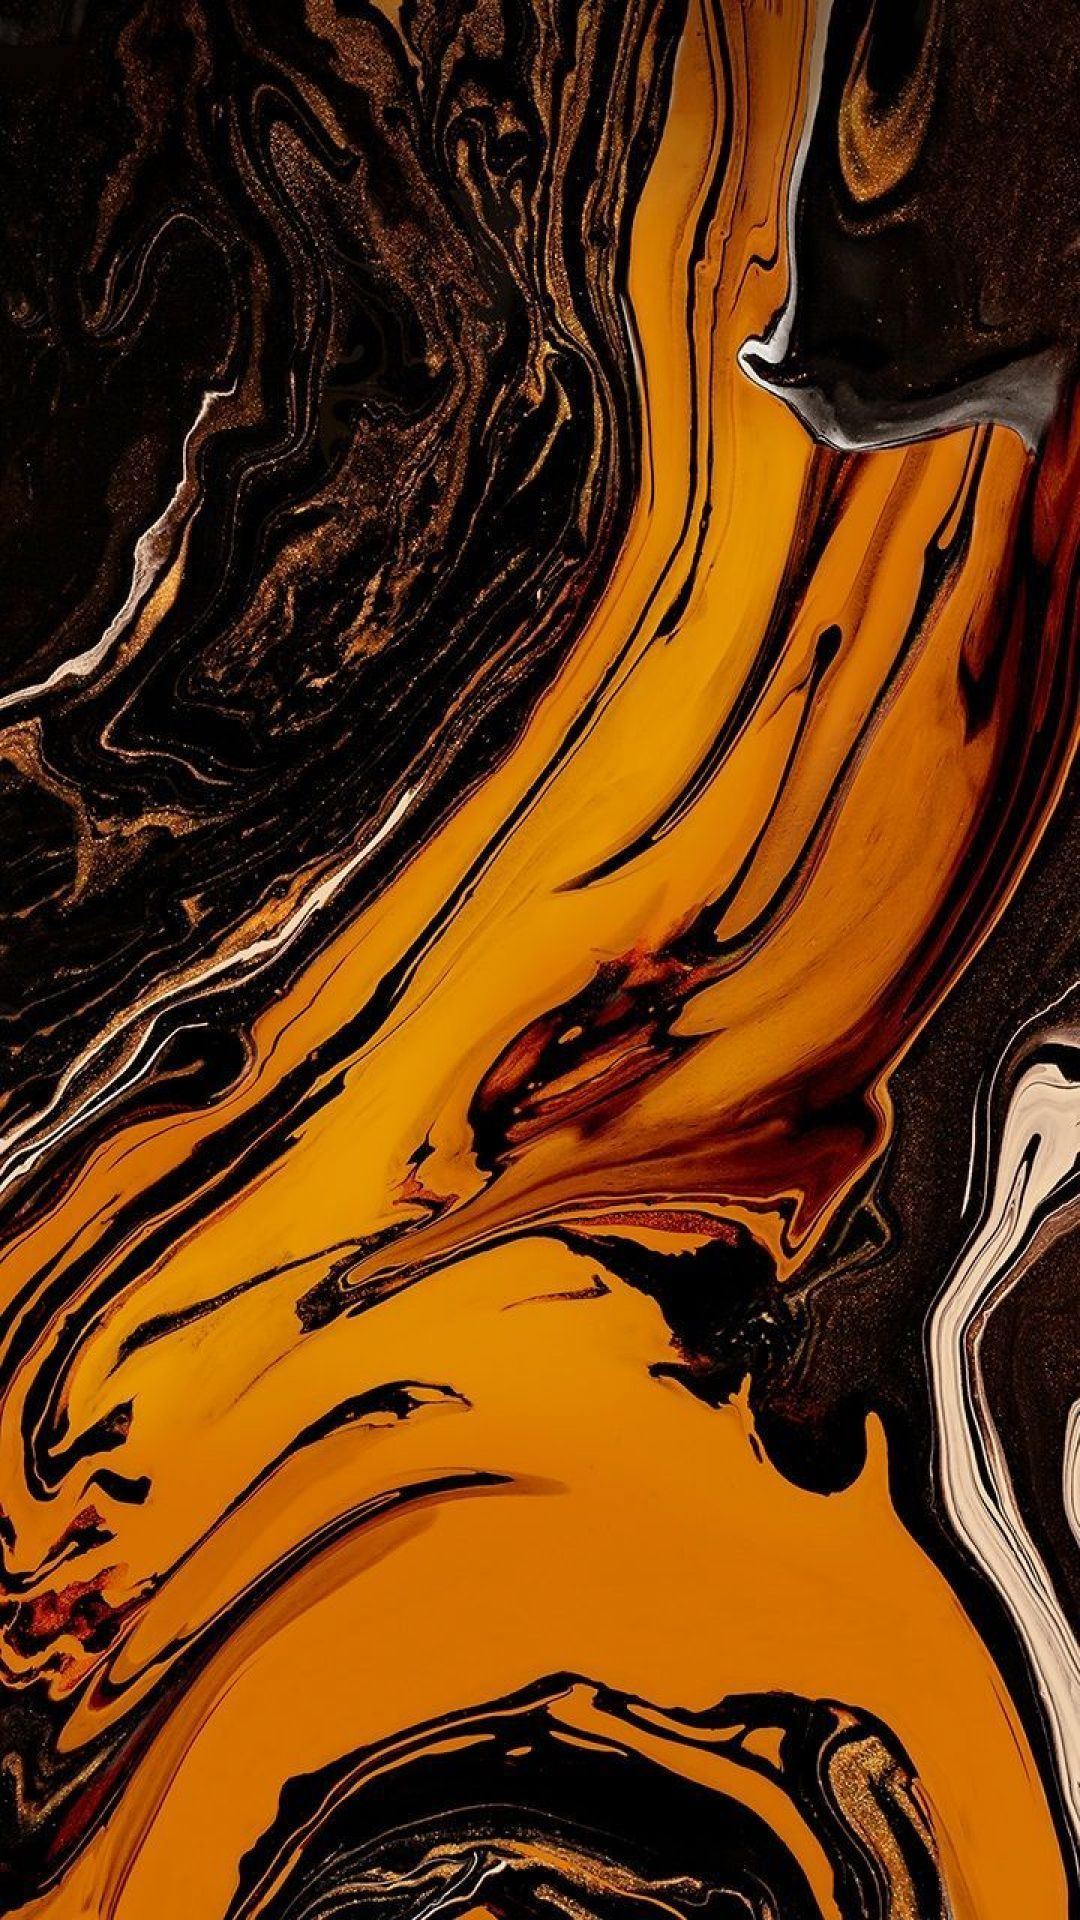 Samsung Galaxy M40 Android Iphone Desktop Hd Backgrounds Wallpapers 1080p 4k In 2020 Abstract Iphone Wallpaper Graphic Wallpaper Galaxy Wallpaper